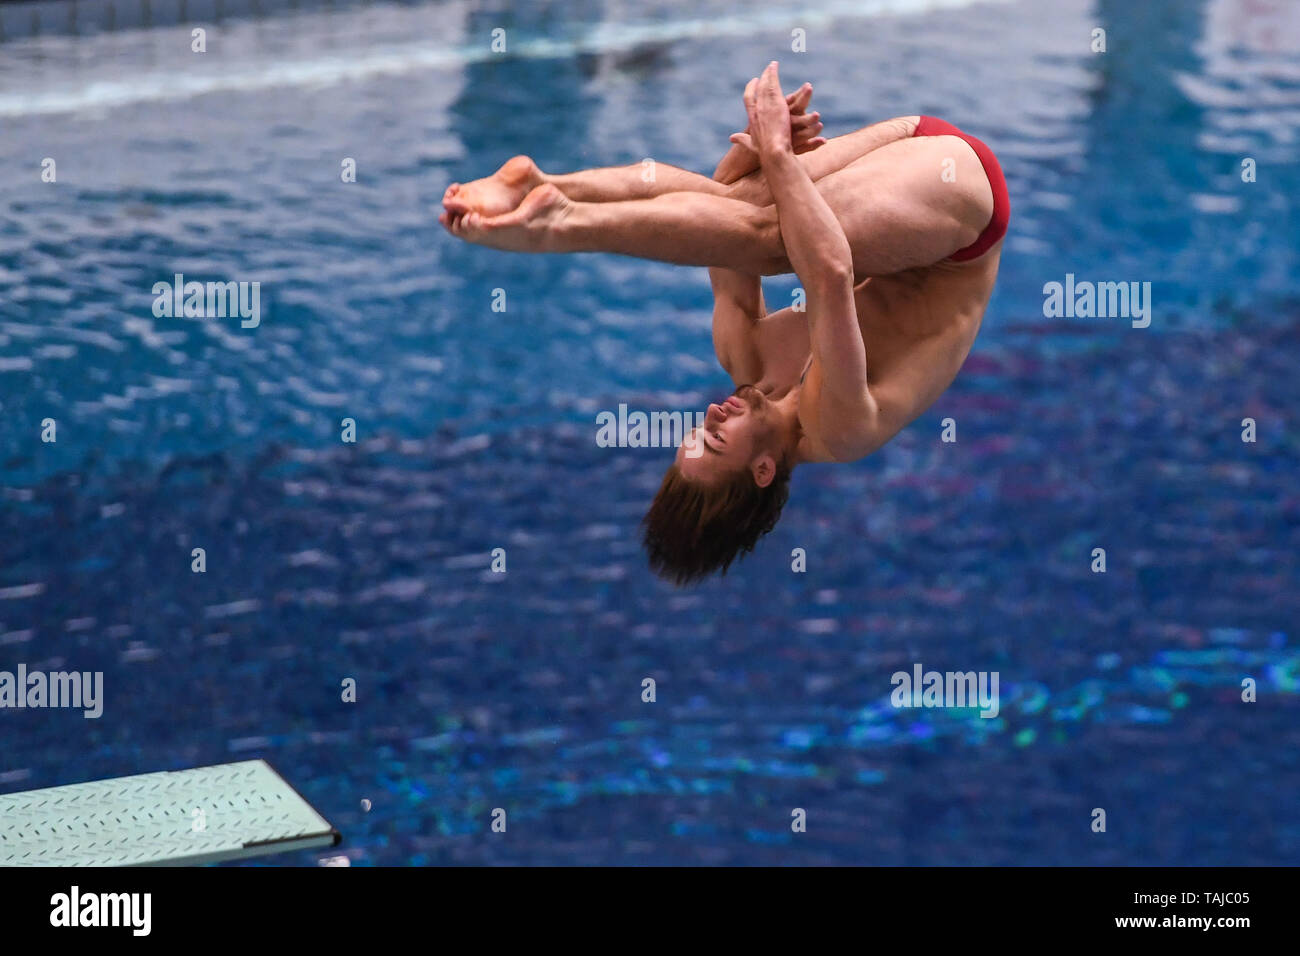 Indianapolis, Indiana, USA. 25th May, 2019. JACOB SILER dives at the University of Indiana Natatorium in Indianapolis, Indiana. Credit: Amy Sanderson/ZUMA Wire/Alamy Live News - Stock Image